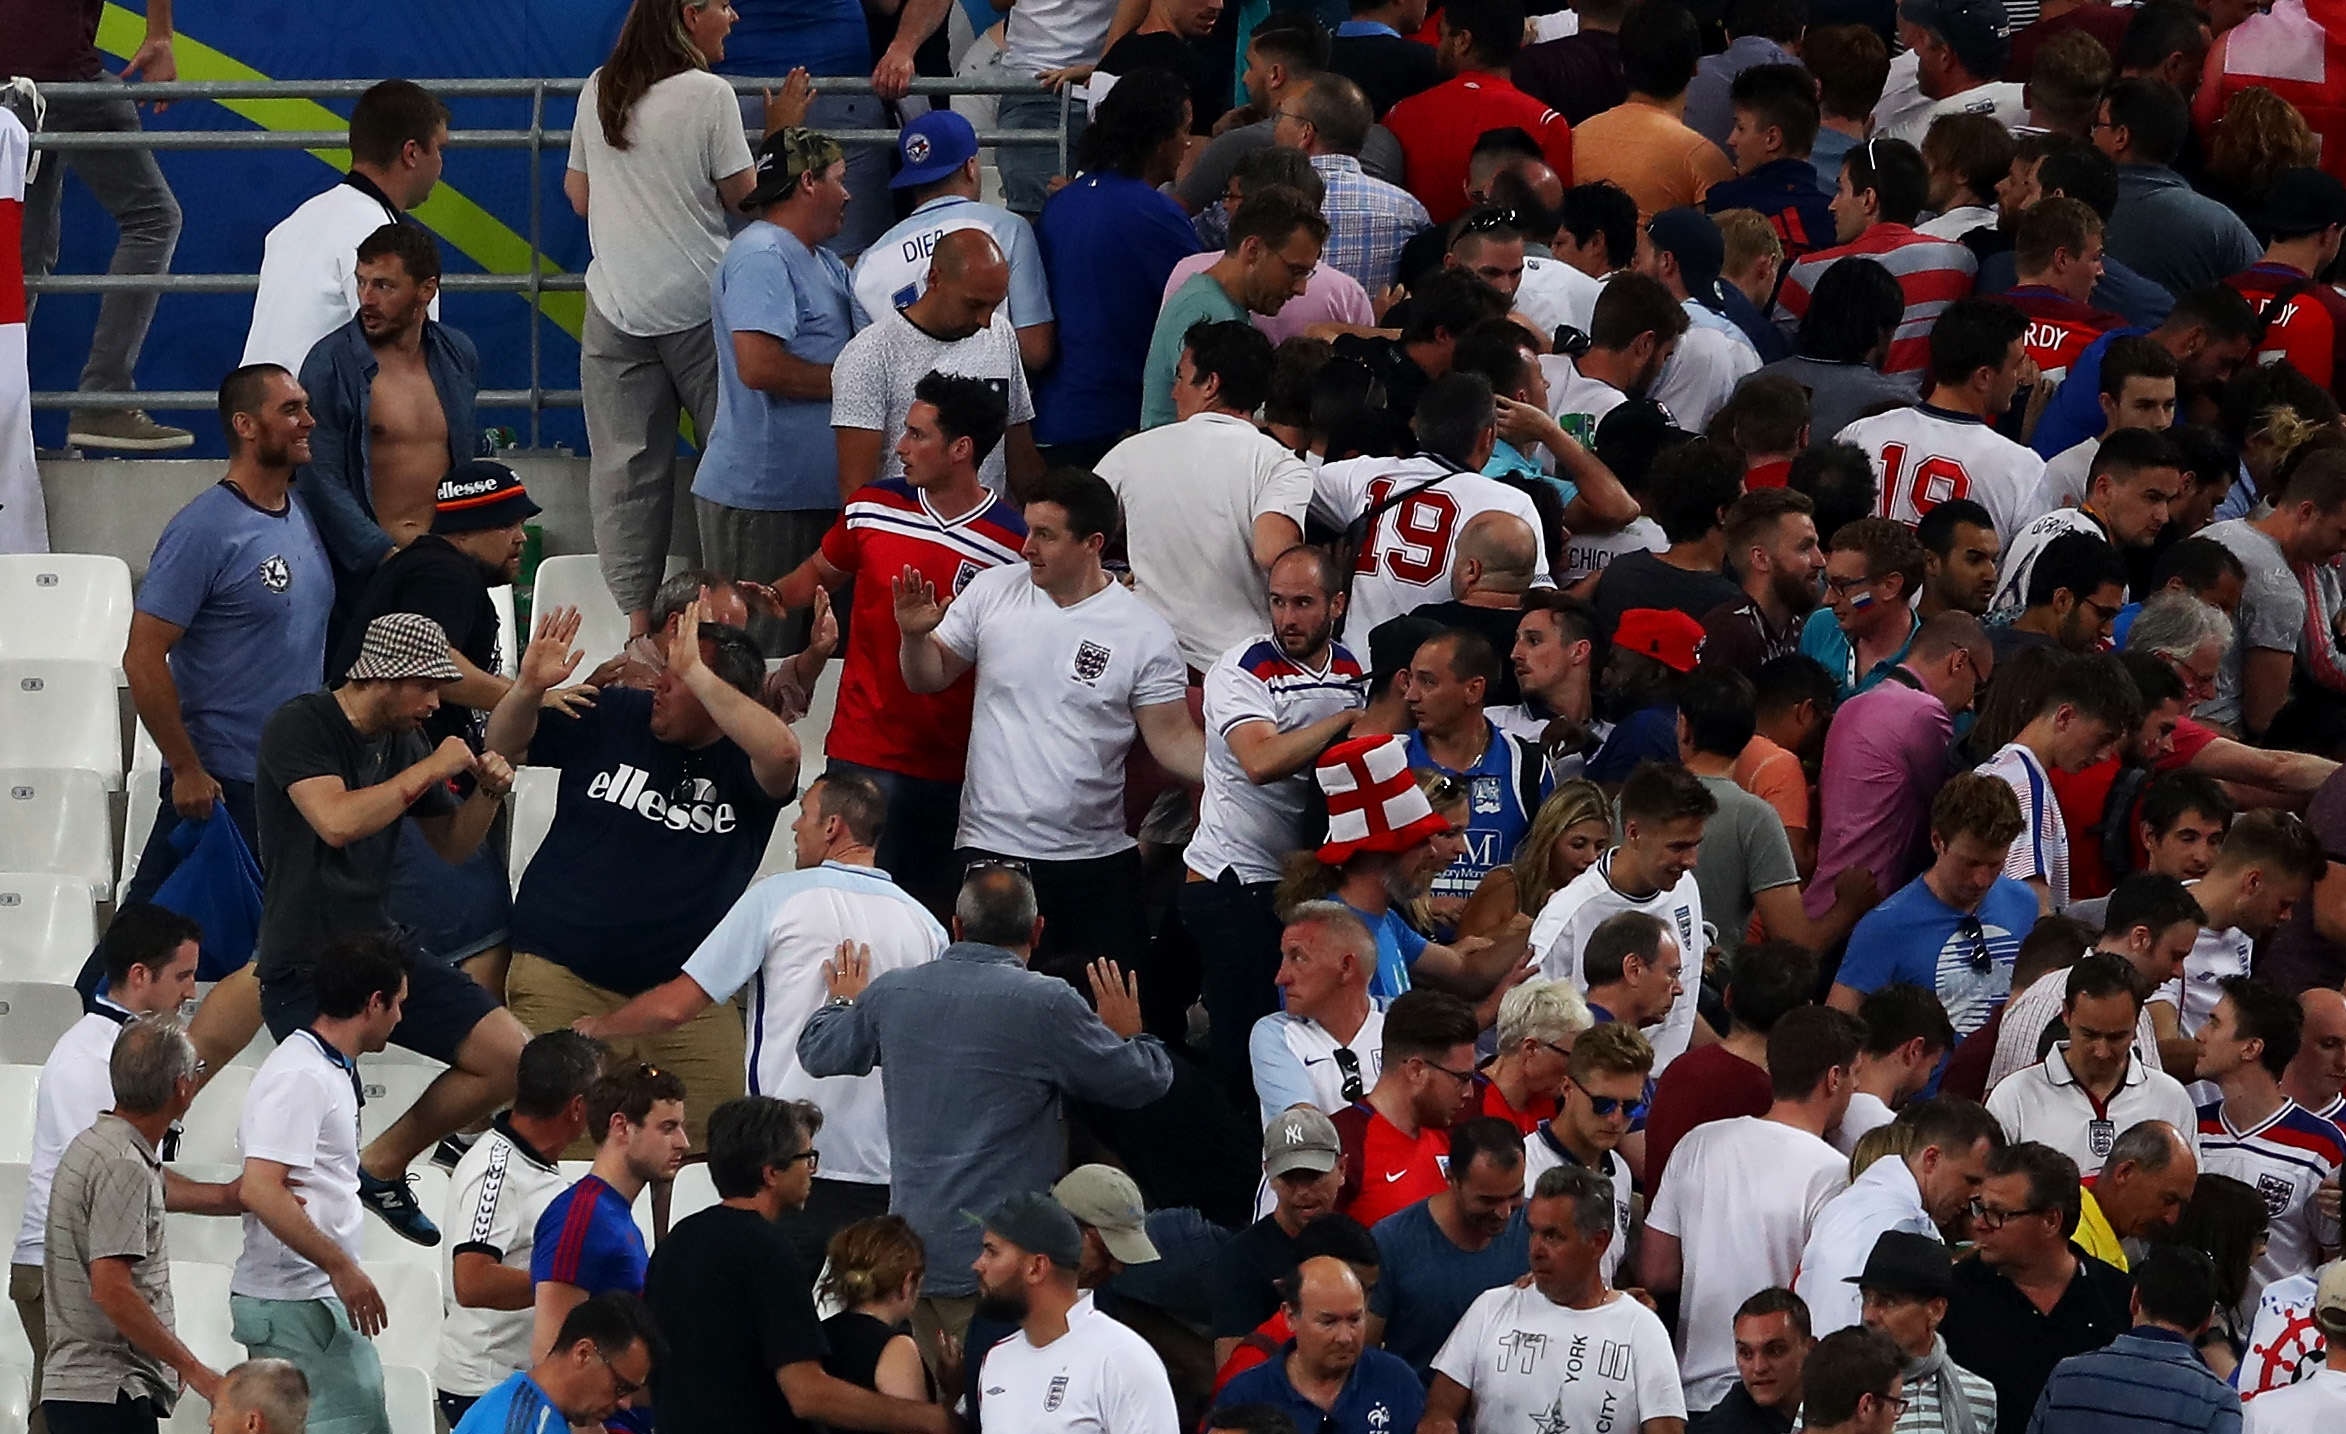 euro16fight33 1 Here Are The Positive Stories From The Euros You Havent Heard About